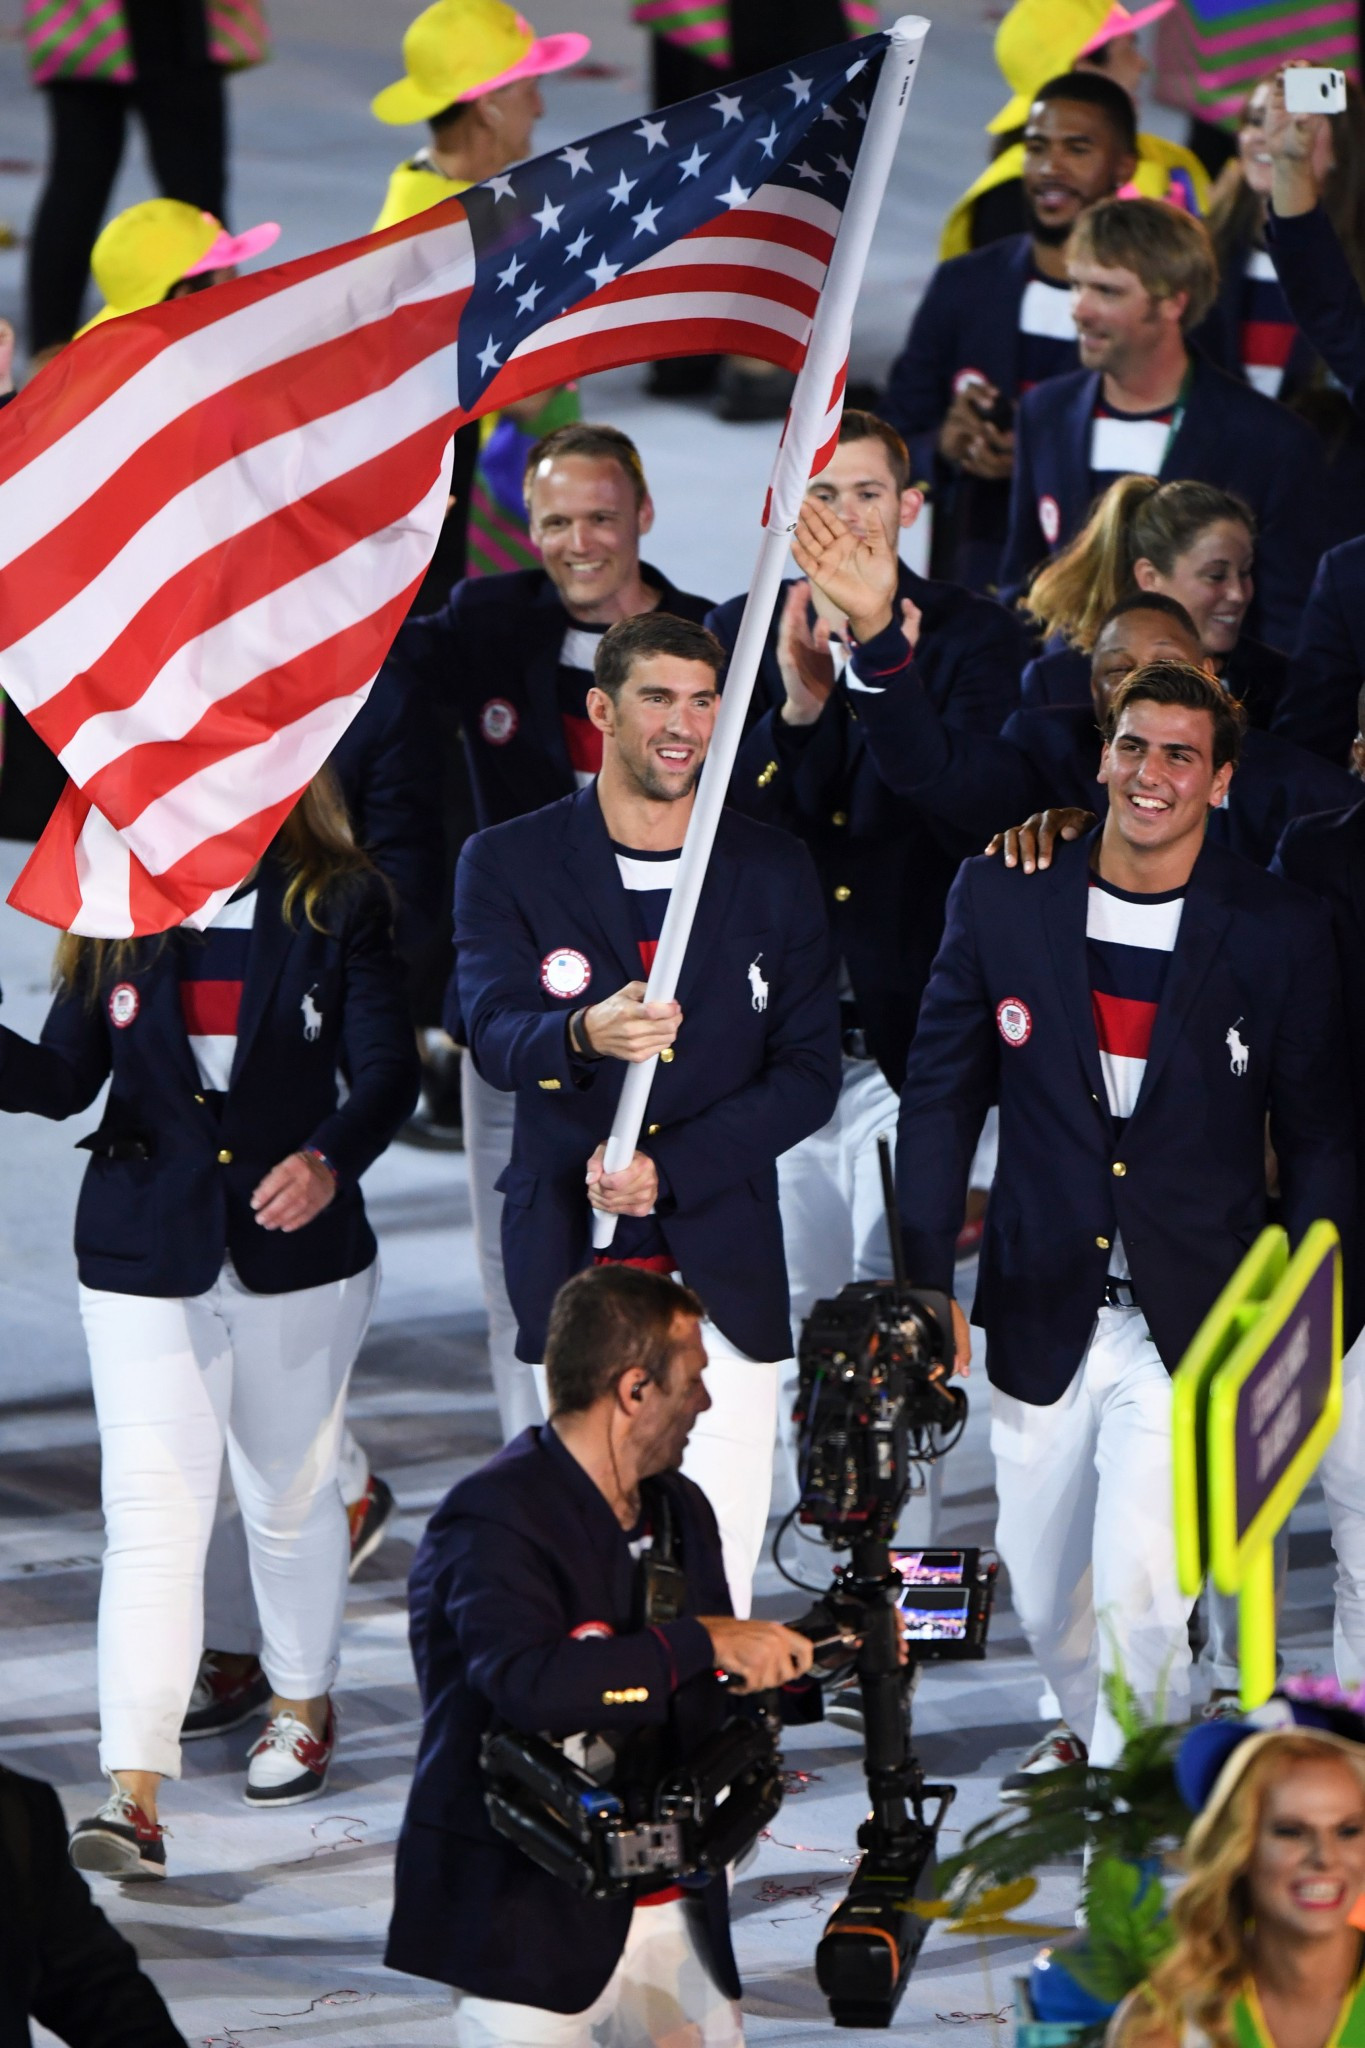 More than seven per cent of revenue went to the United States Olympic Committee ©Getty Images